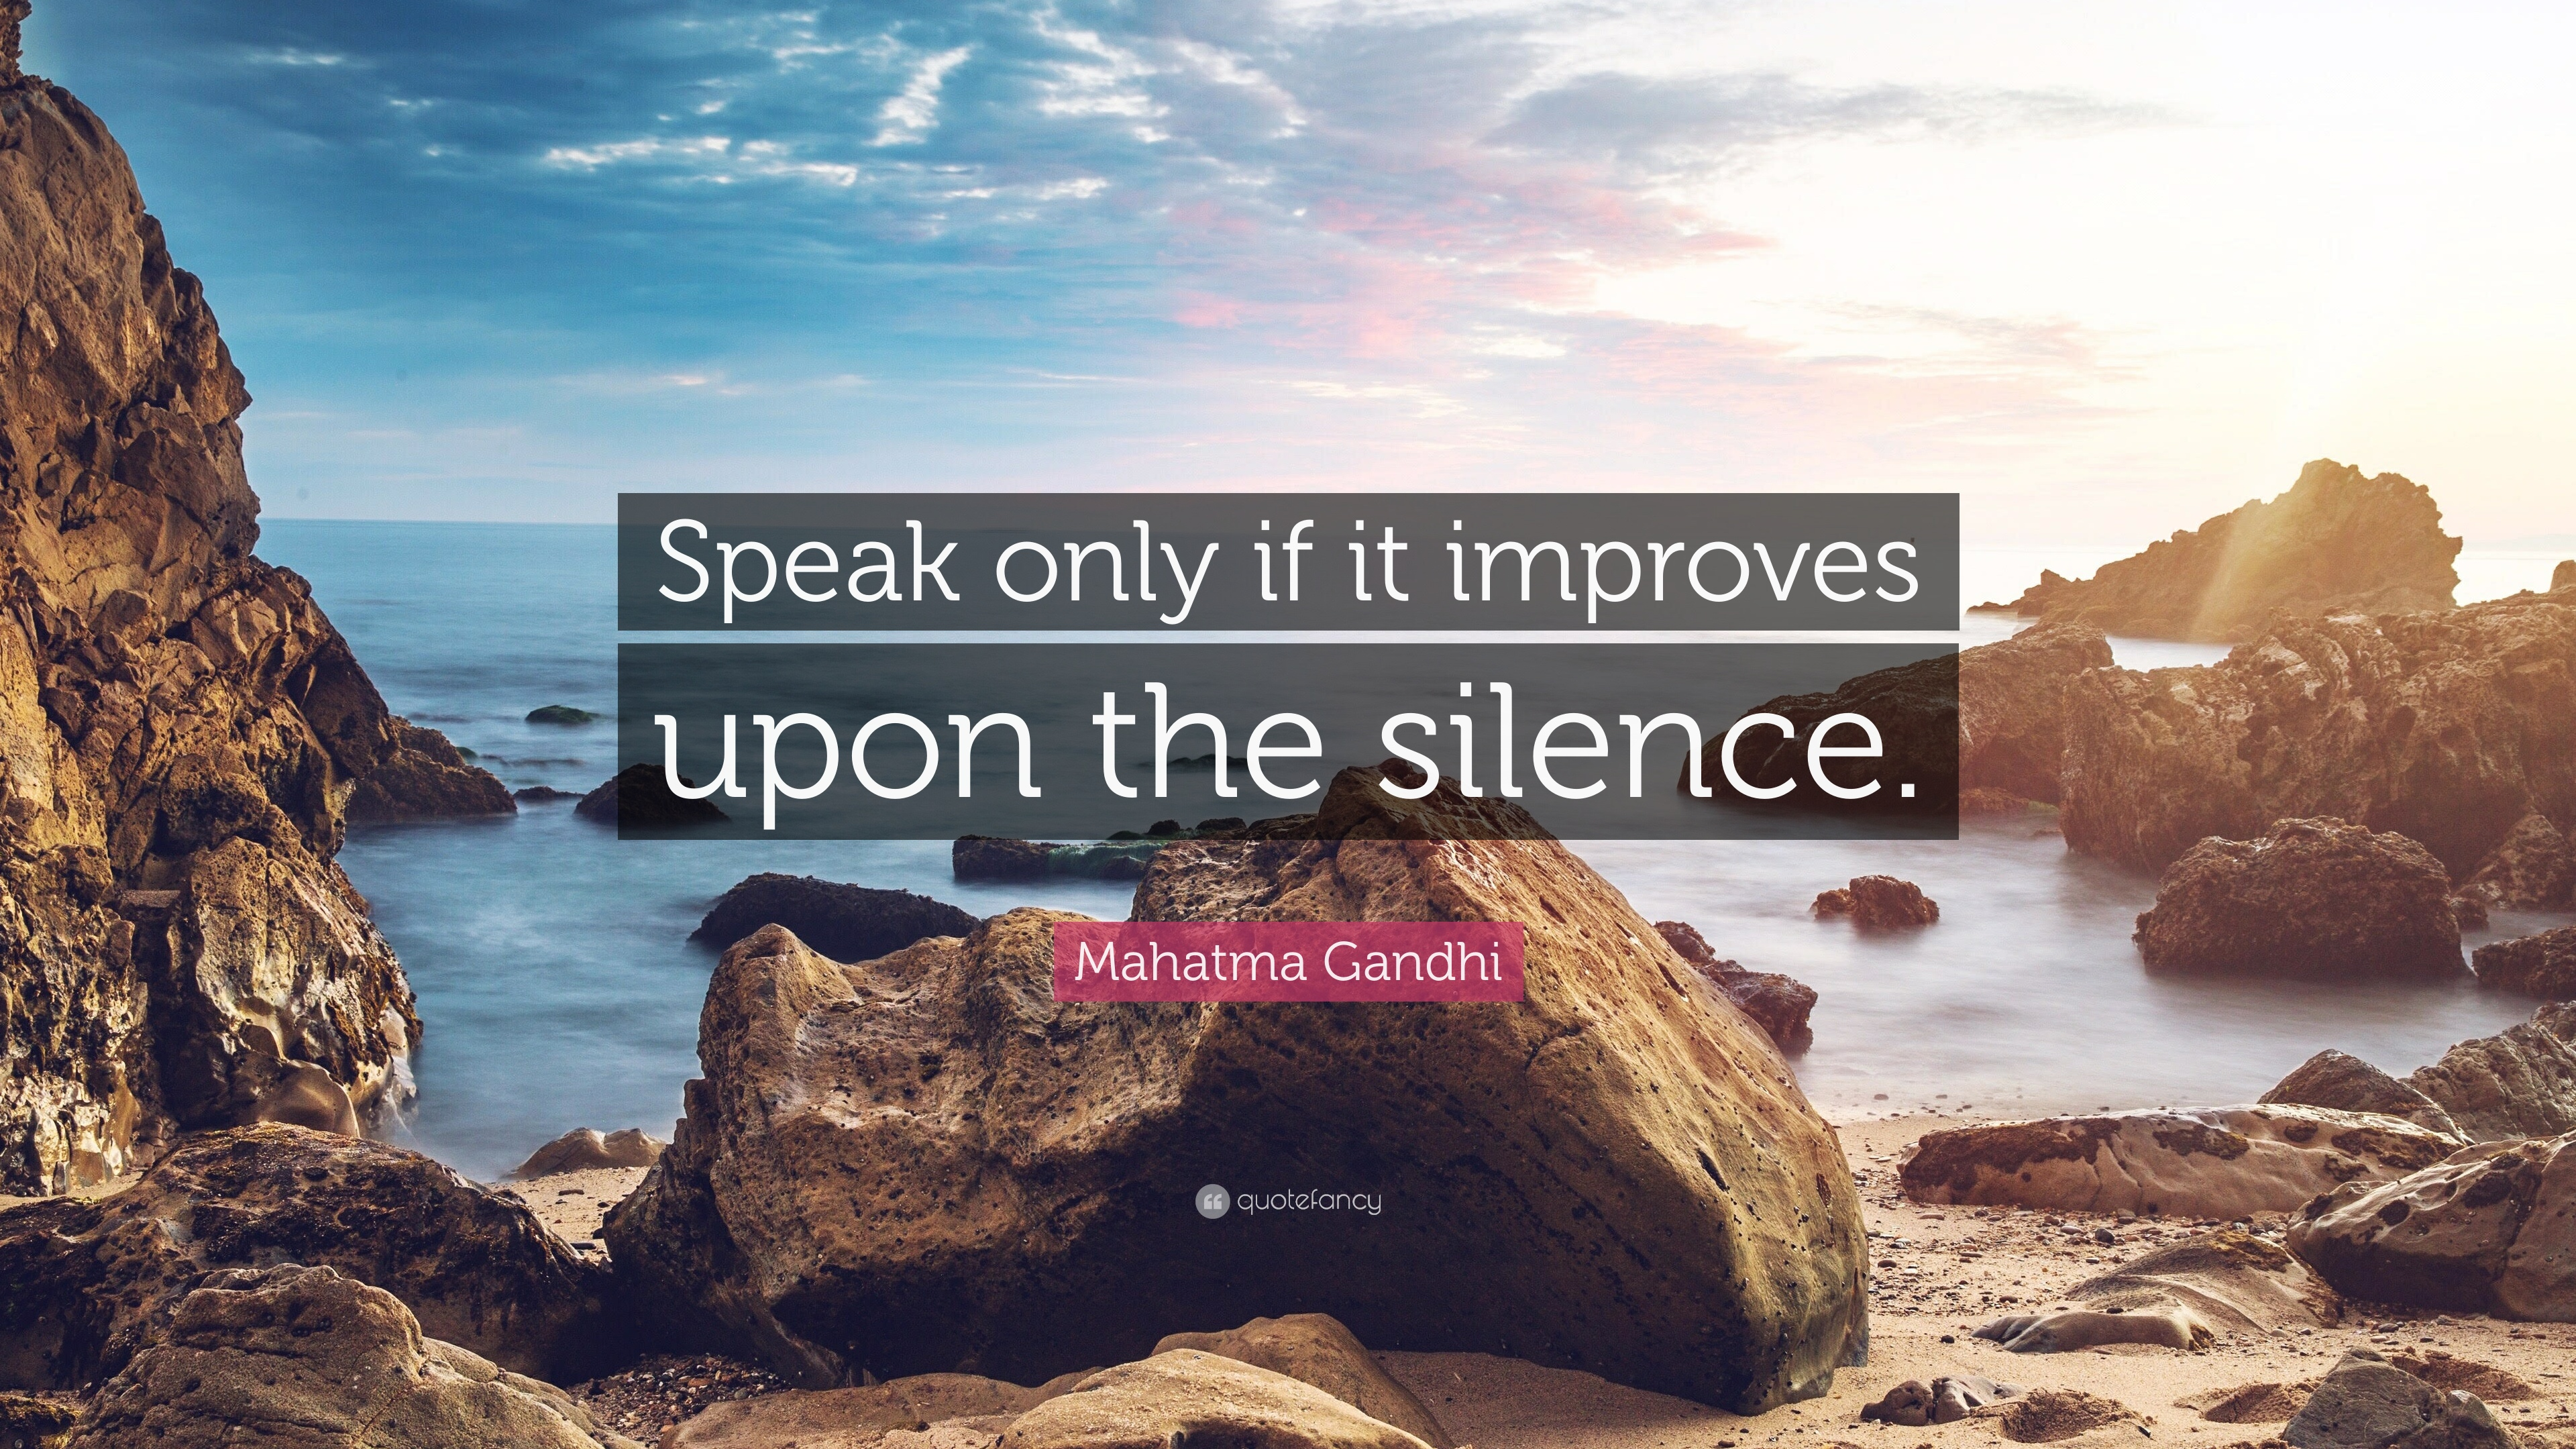 """Speak only if it improves upon the silence."" -Mahatma Gandhi [3840×2160]"